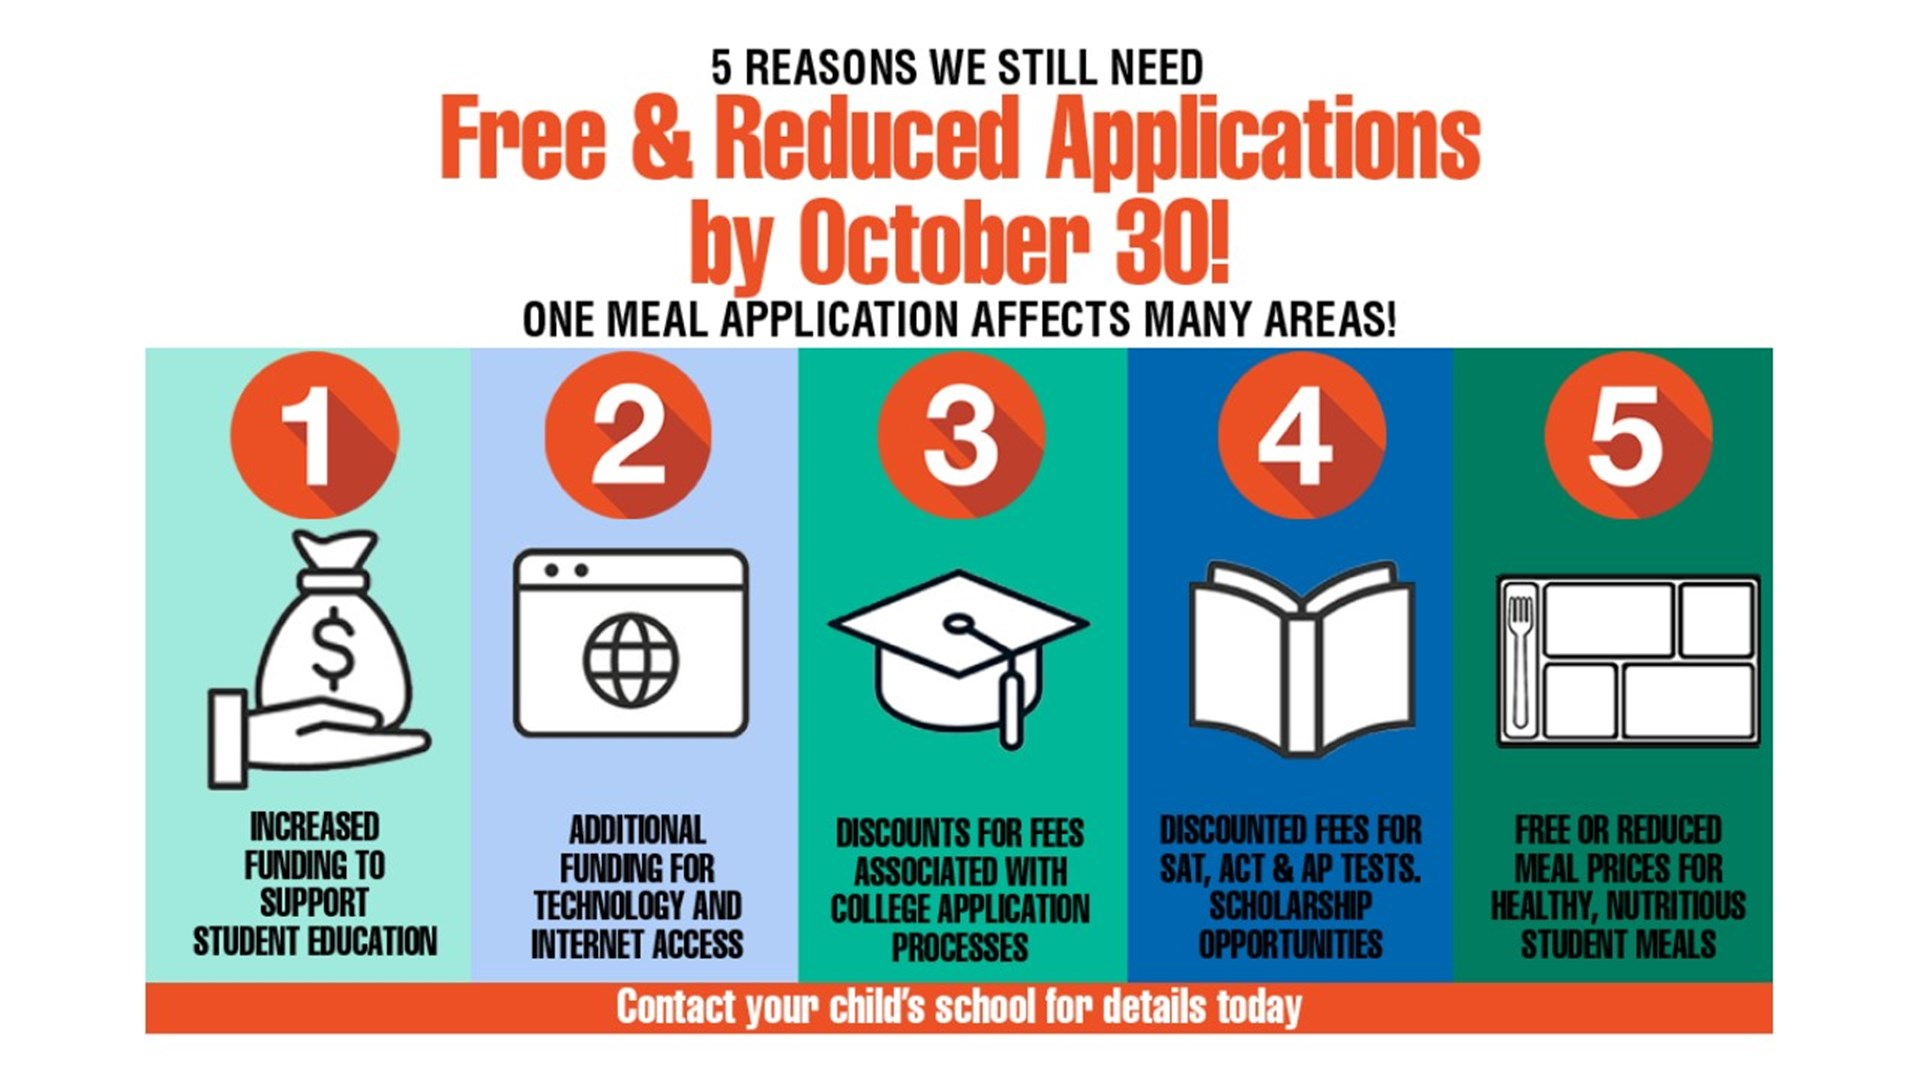 Free & Reduced Meal Applications